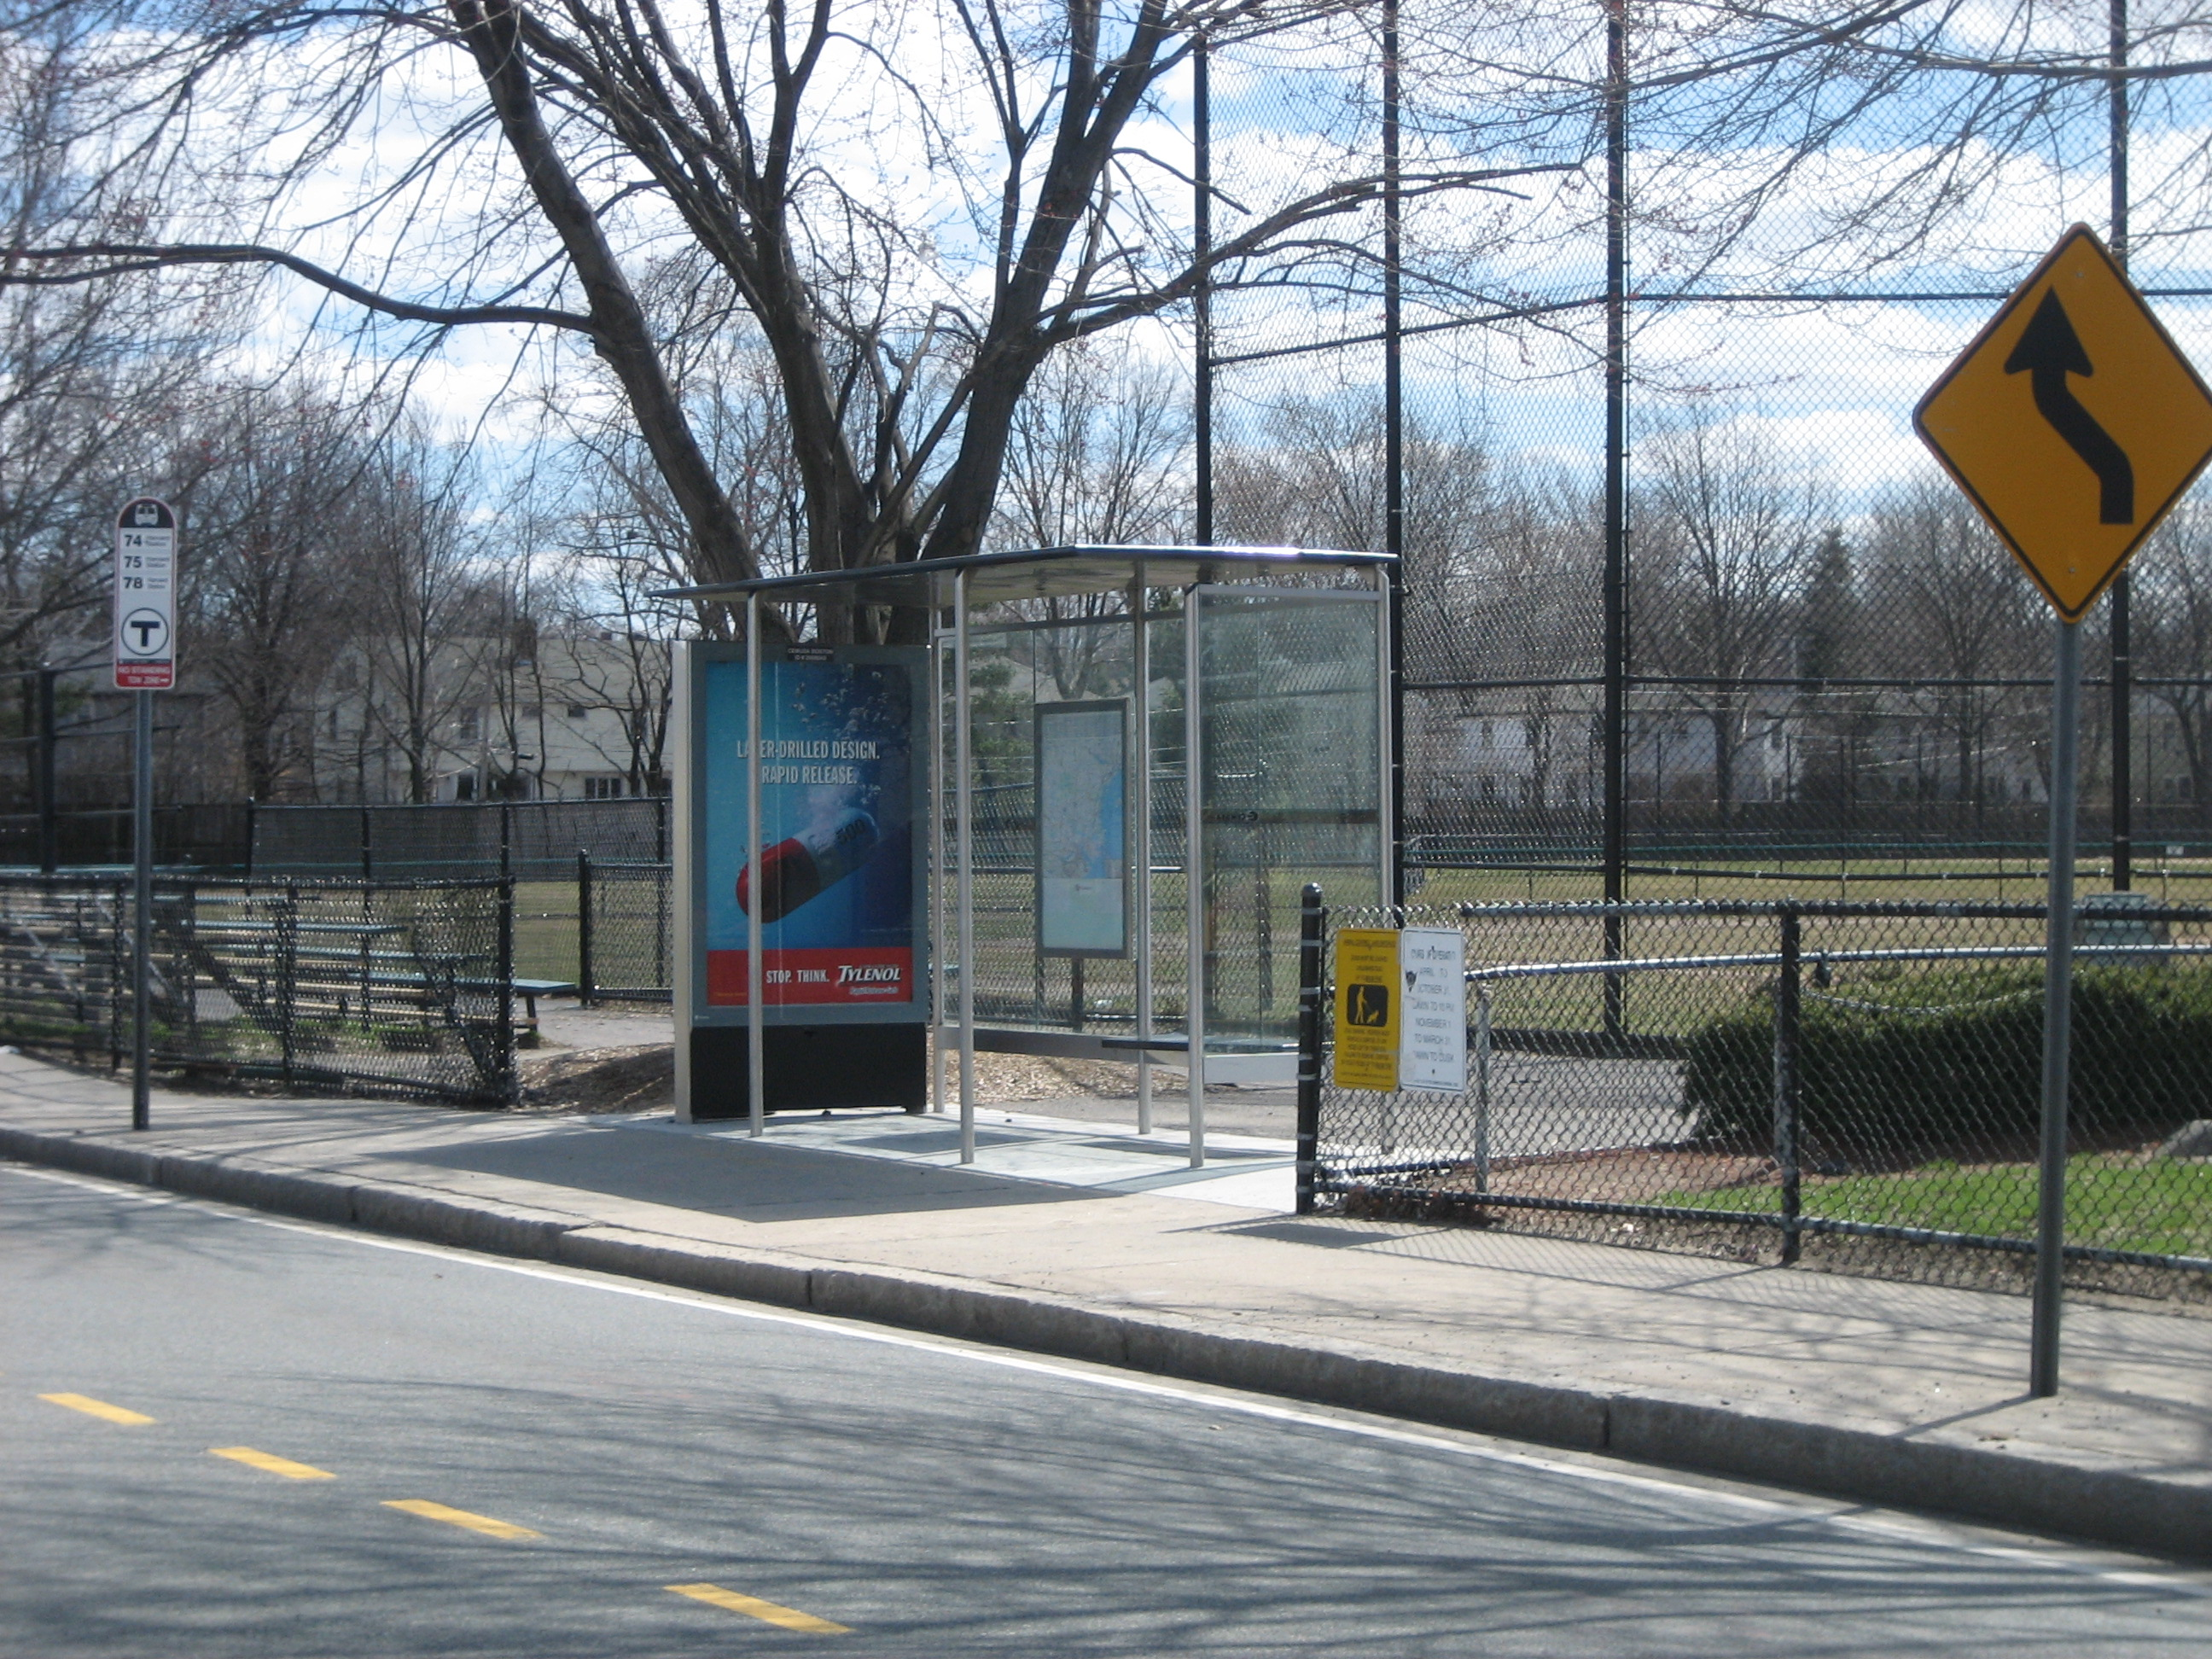 Cemusa bus shelter on Concord Avenue at the playing fields behind the armory.